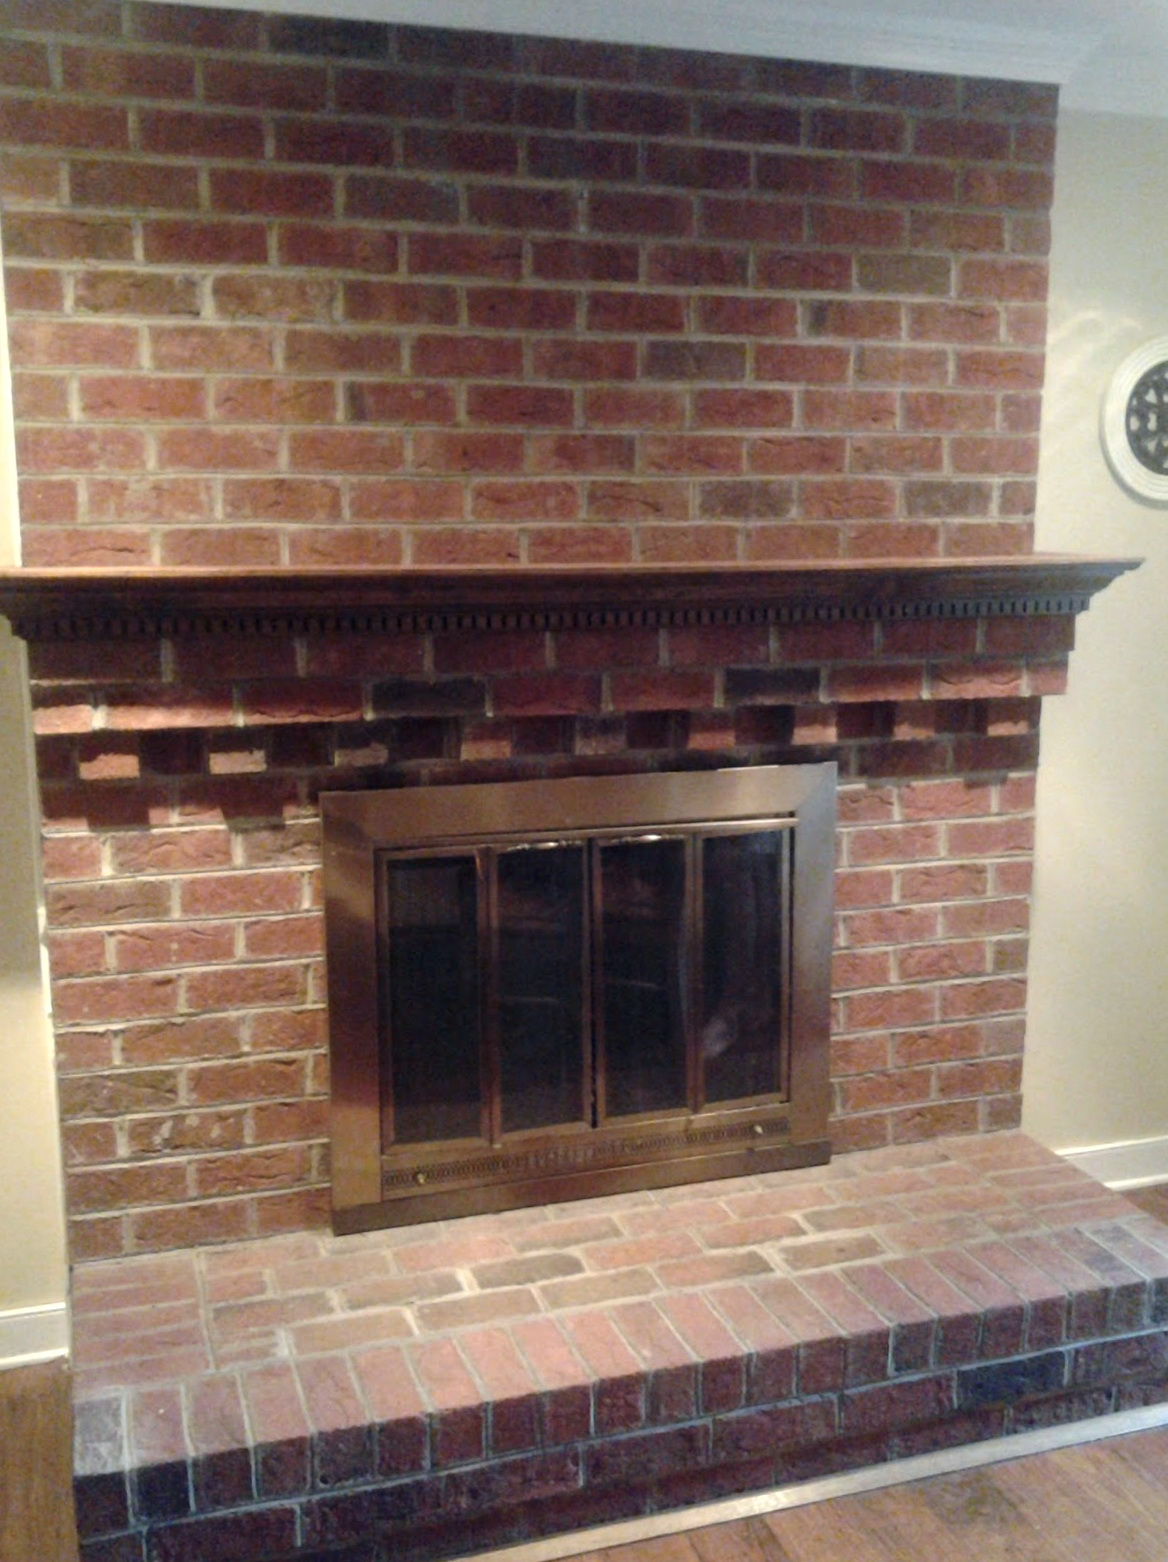 Cleaning Fireplace Brick With Vinegar Part - 30: Cleaning Brick Fireplace With Tsp